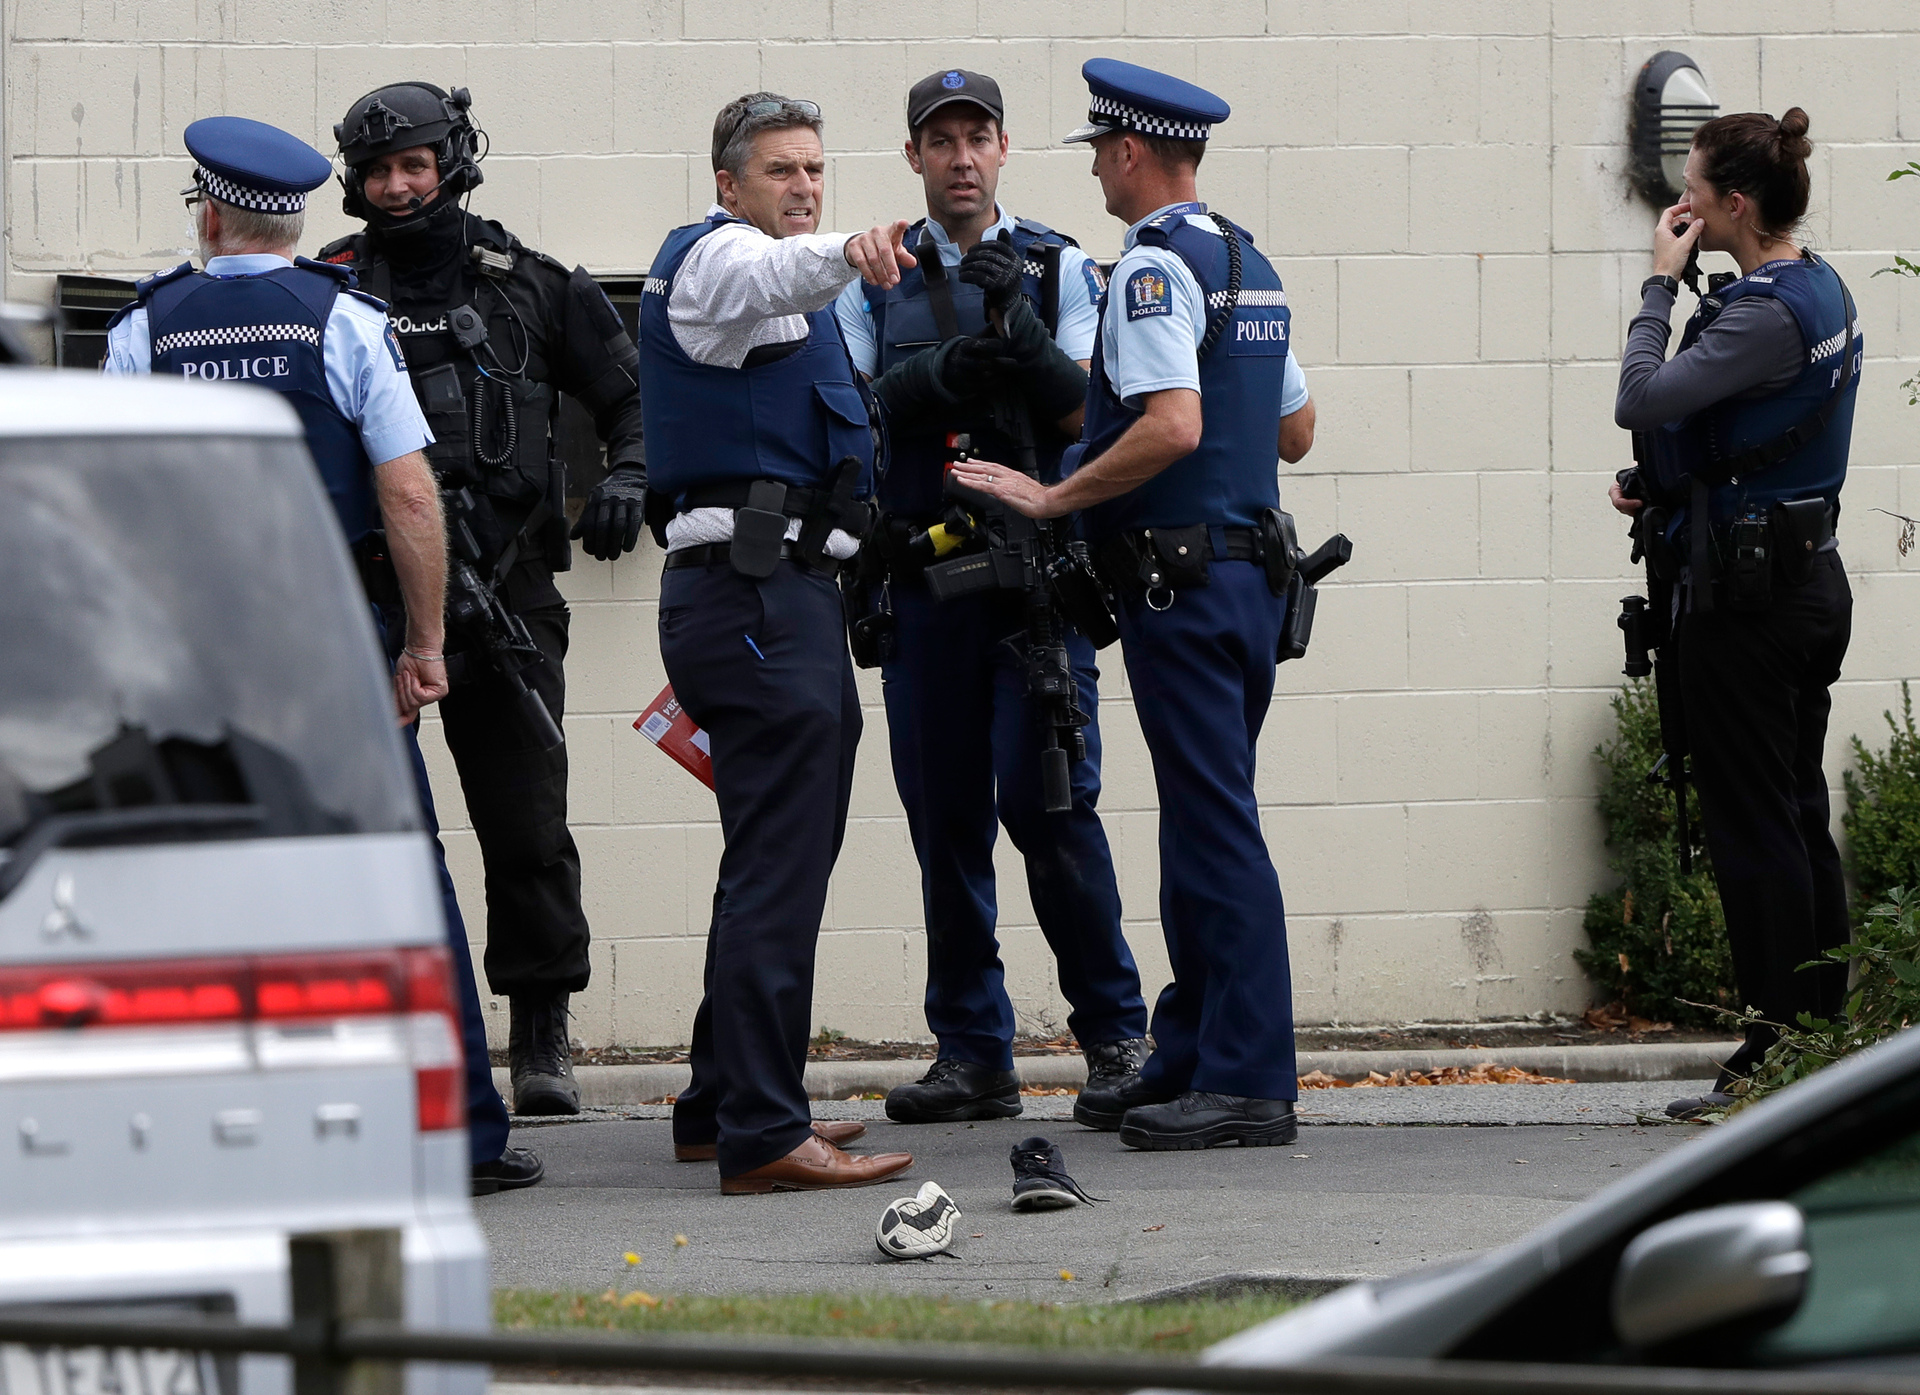 Mosque shooting: 'Don't watch the gunman's video' - clinical